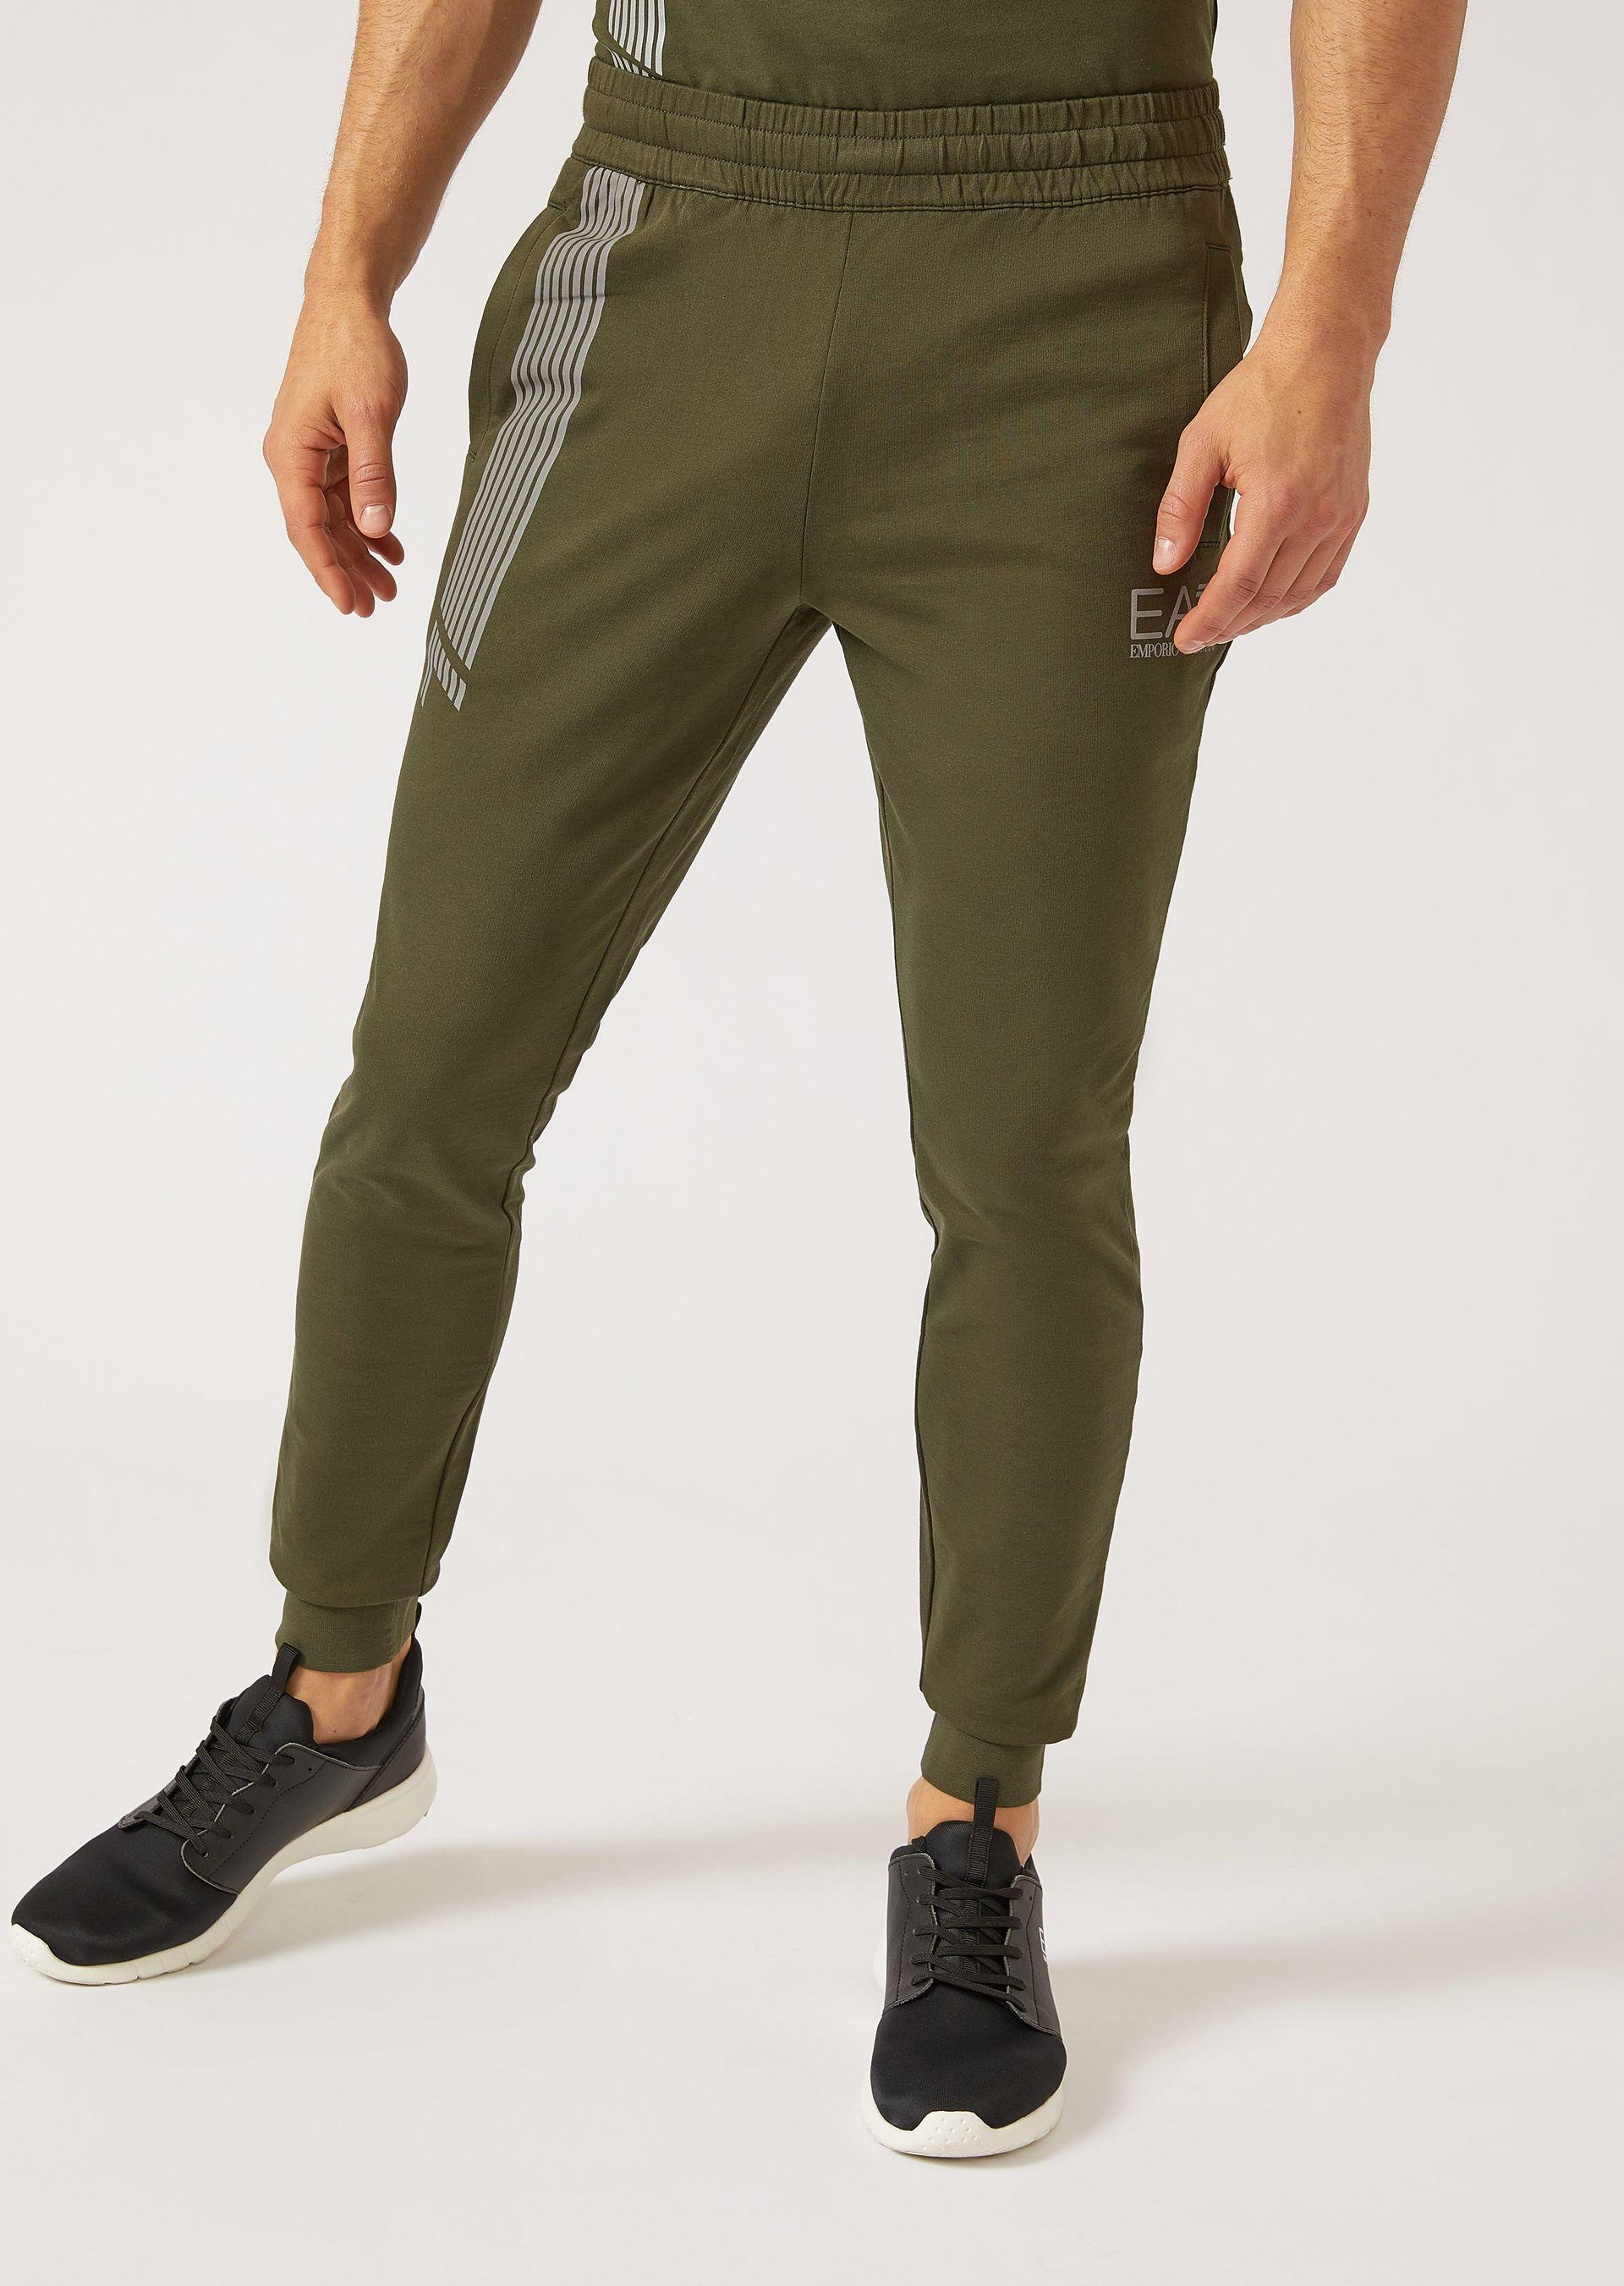 Emporio Armani Sweatpants - Item 13142762 In Light Gray ; Navy Blue ; Military Green ; Black